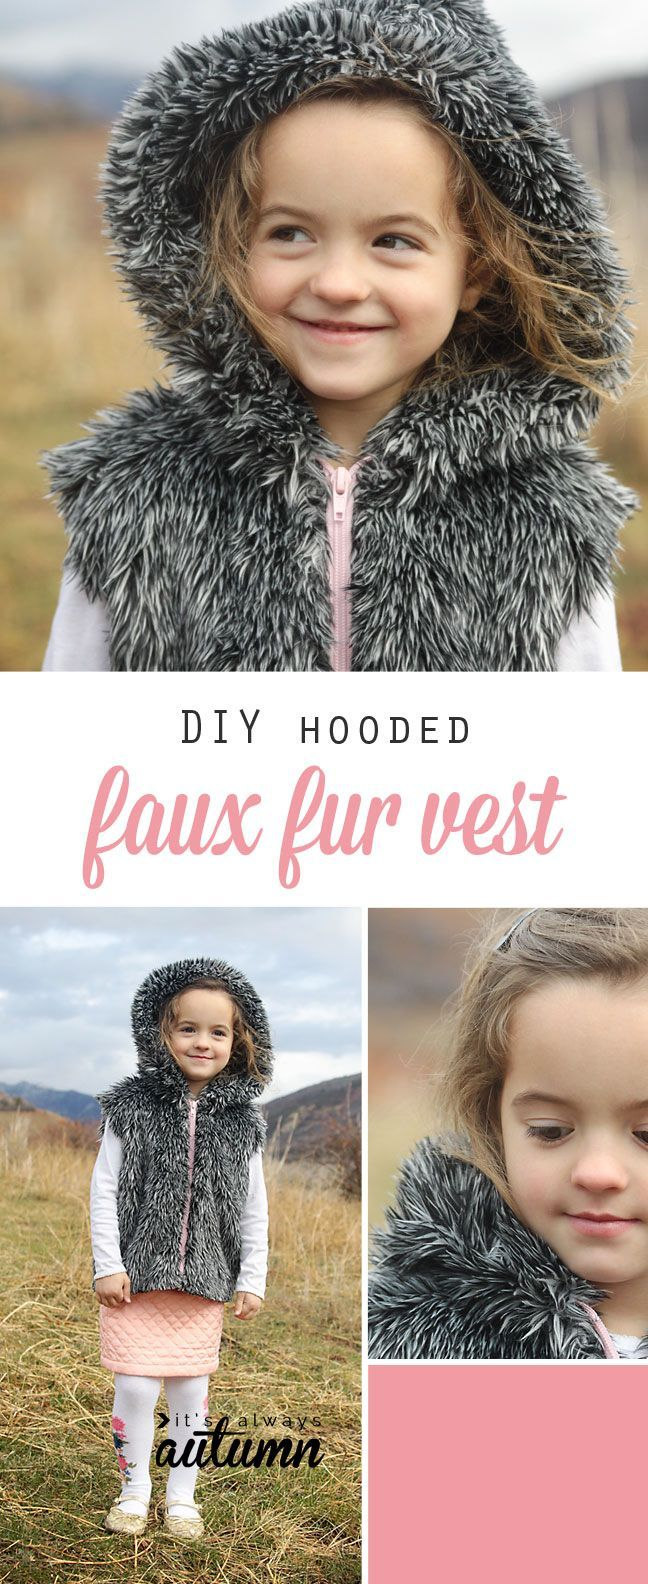 I want to make one of these! Easy DIY faux fur vest sewing tutorial.